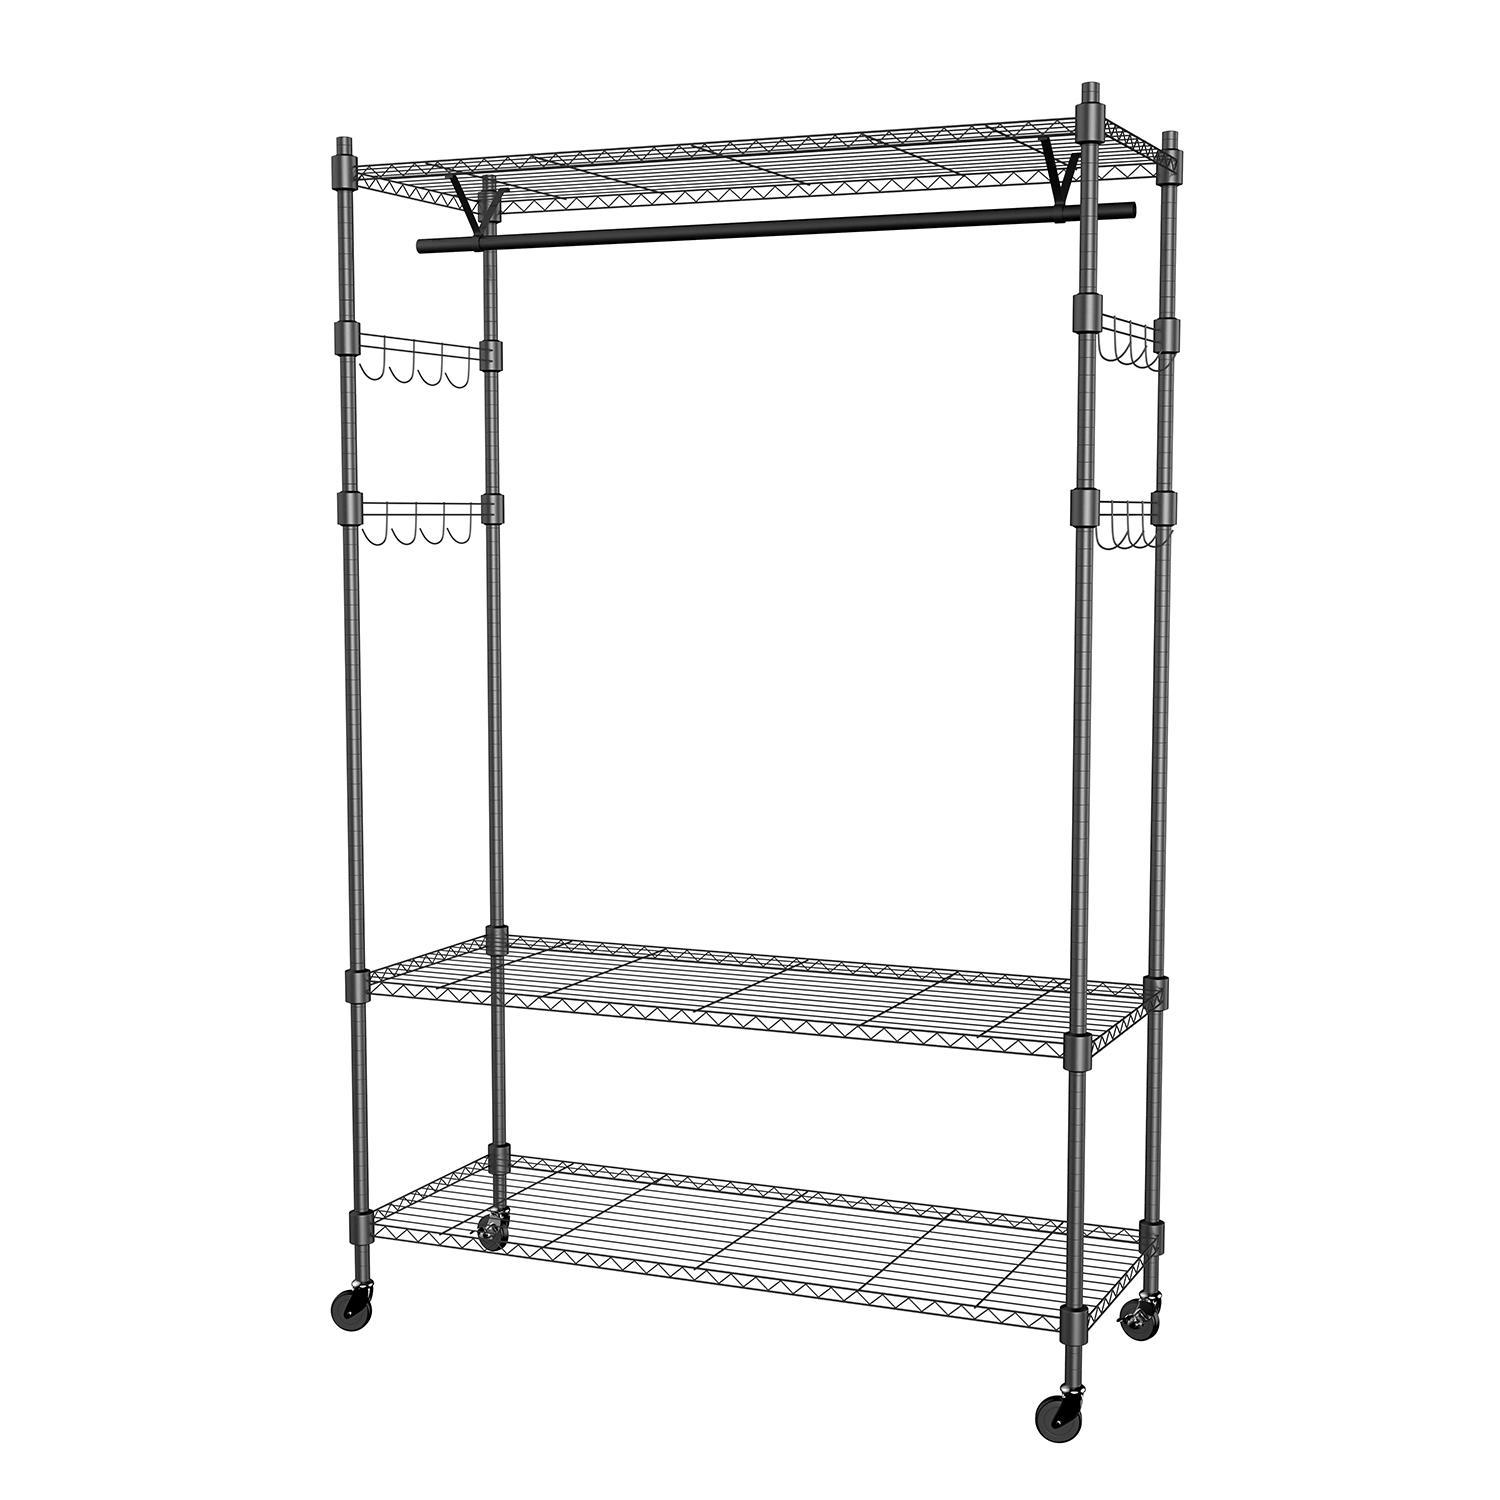 MIRAGE | Rakuten: Portable 3-Tier Wire Shelving Clothes Shelf ...